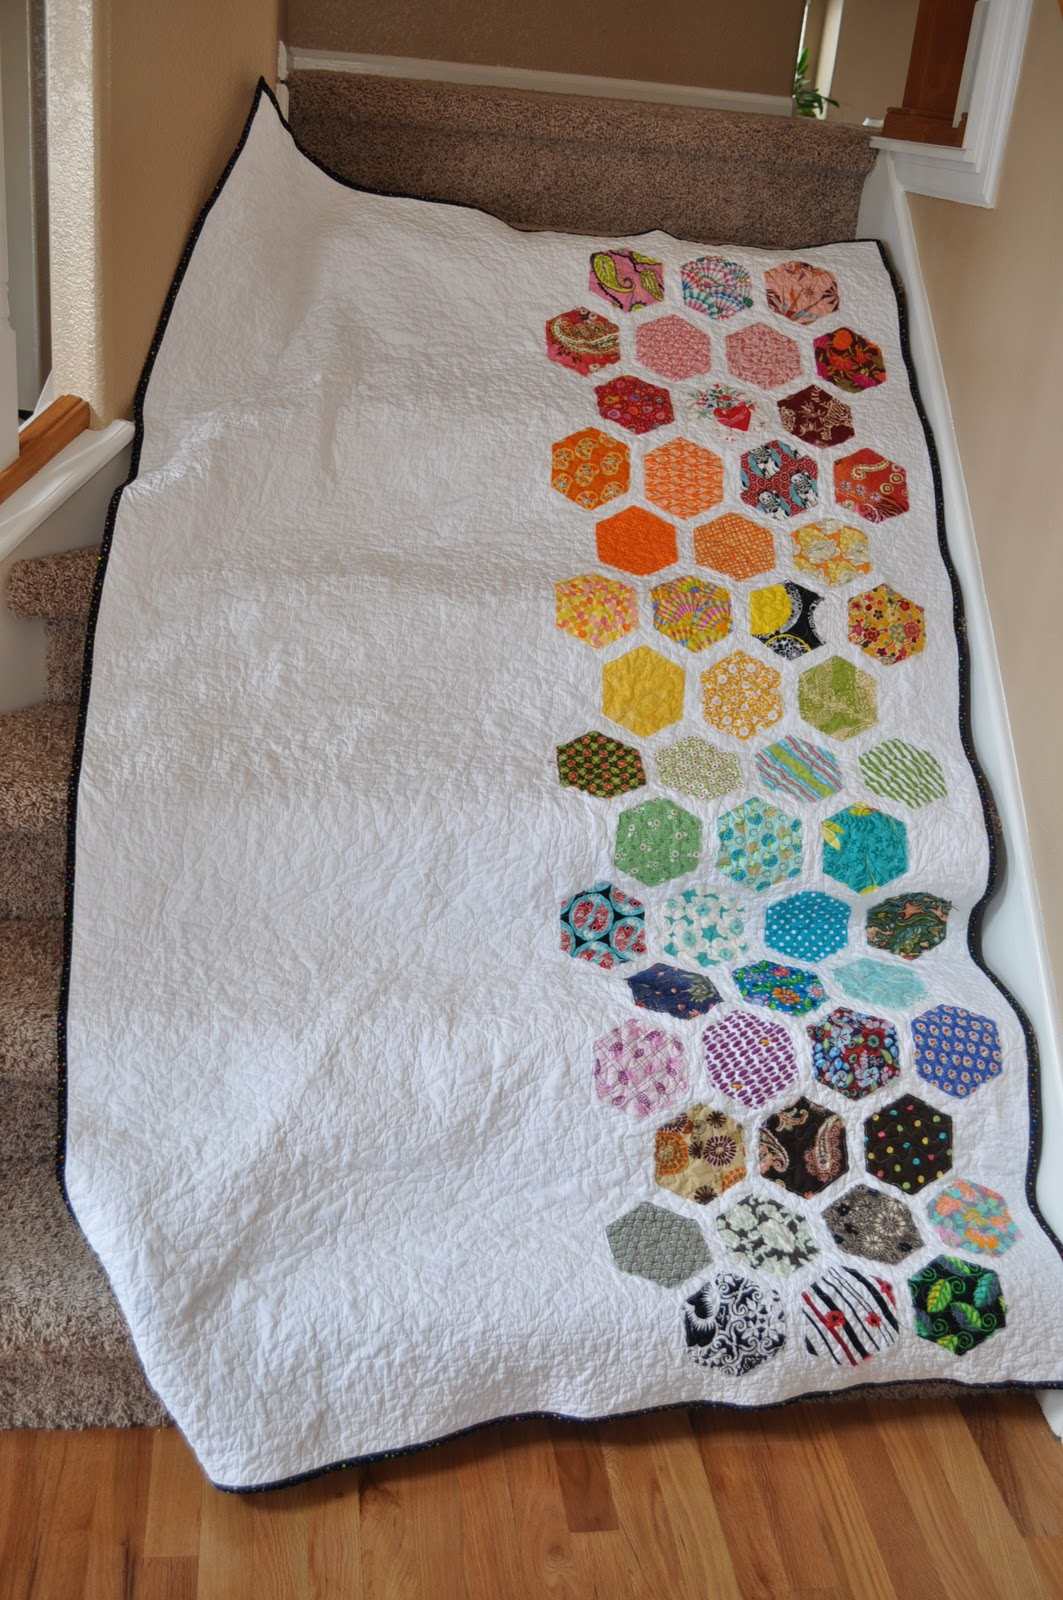 We Shall Sew: 100 Days of Modern Quilting ~ Day 5 : 100 days of modern quilting - Adamdwight.com